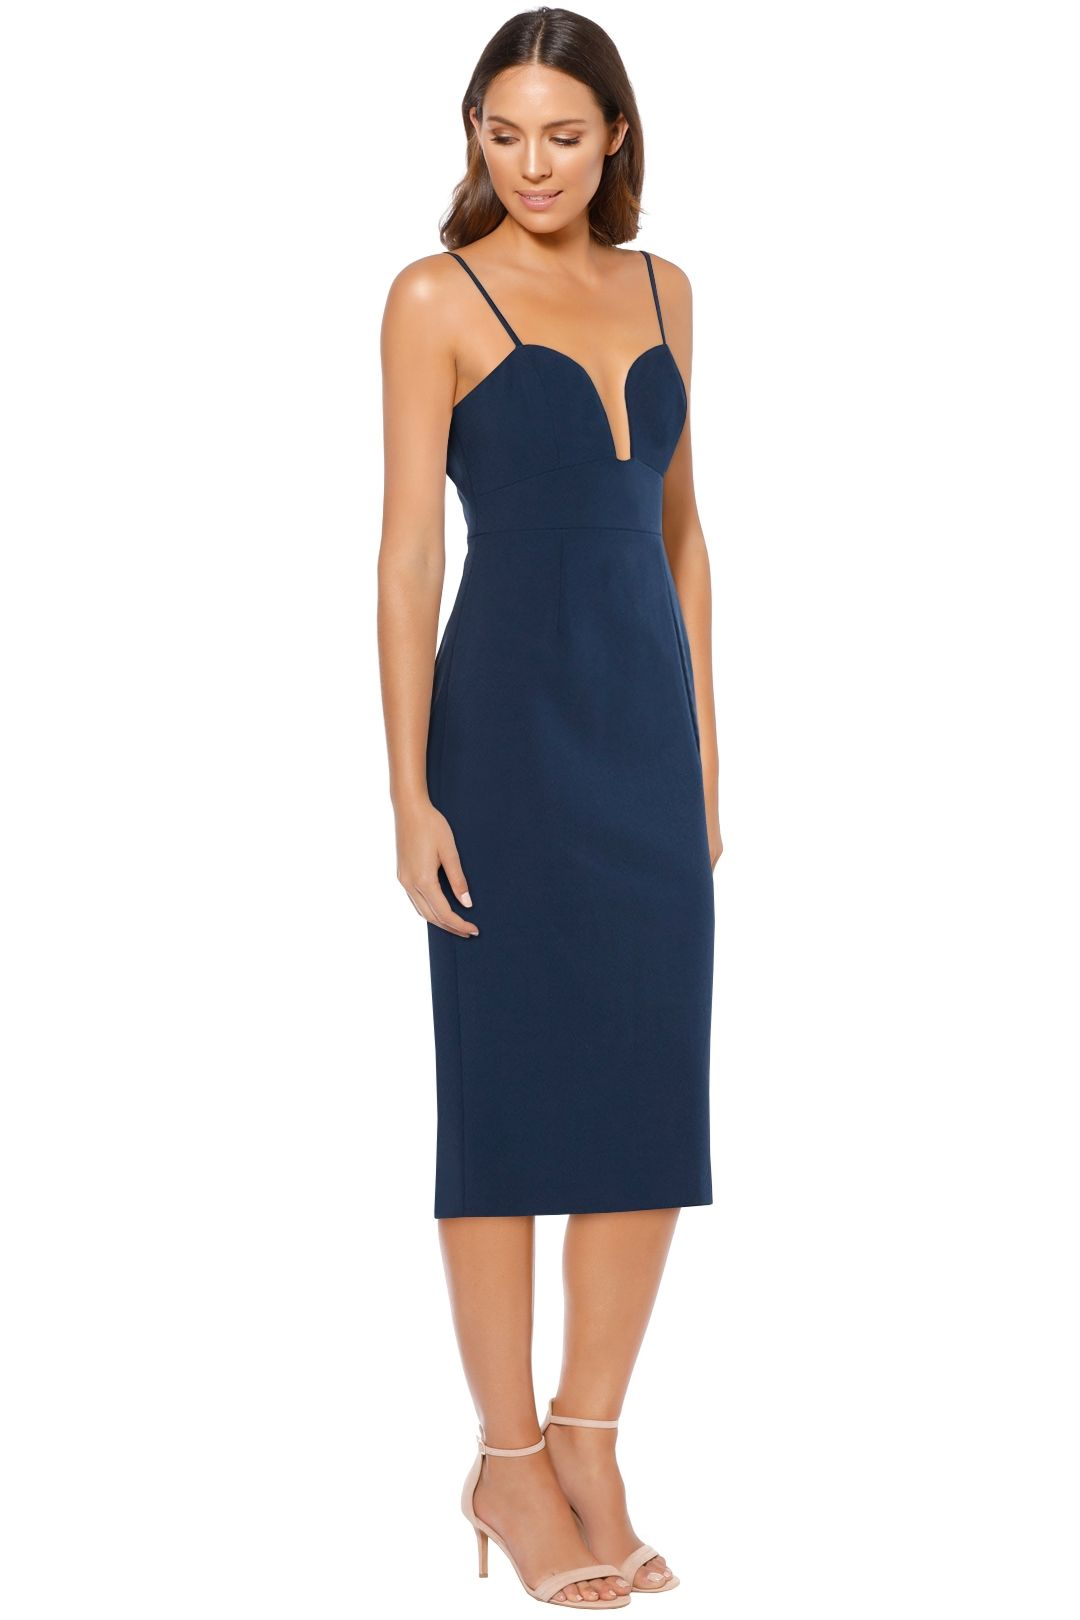 Talulah - Intimate Bodycon - Navy - Side